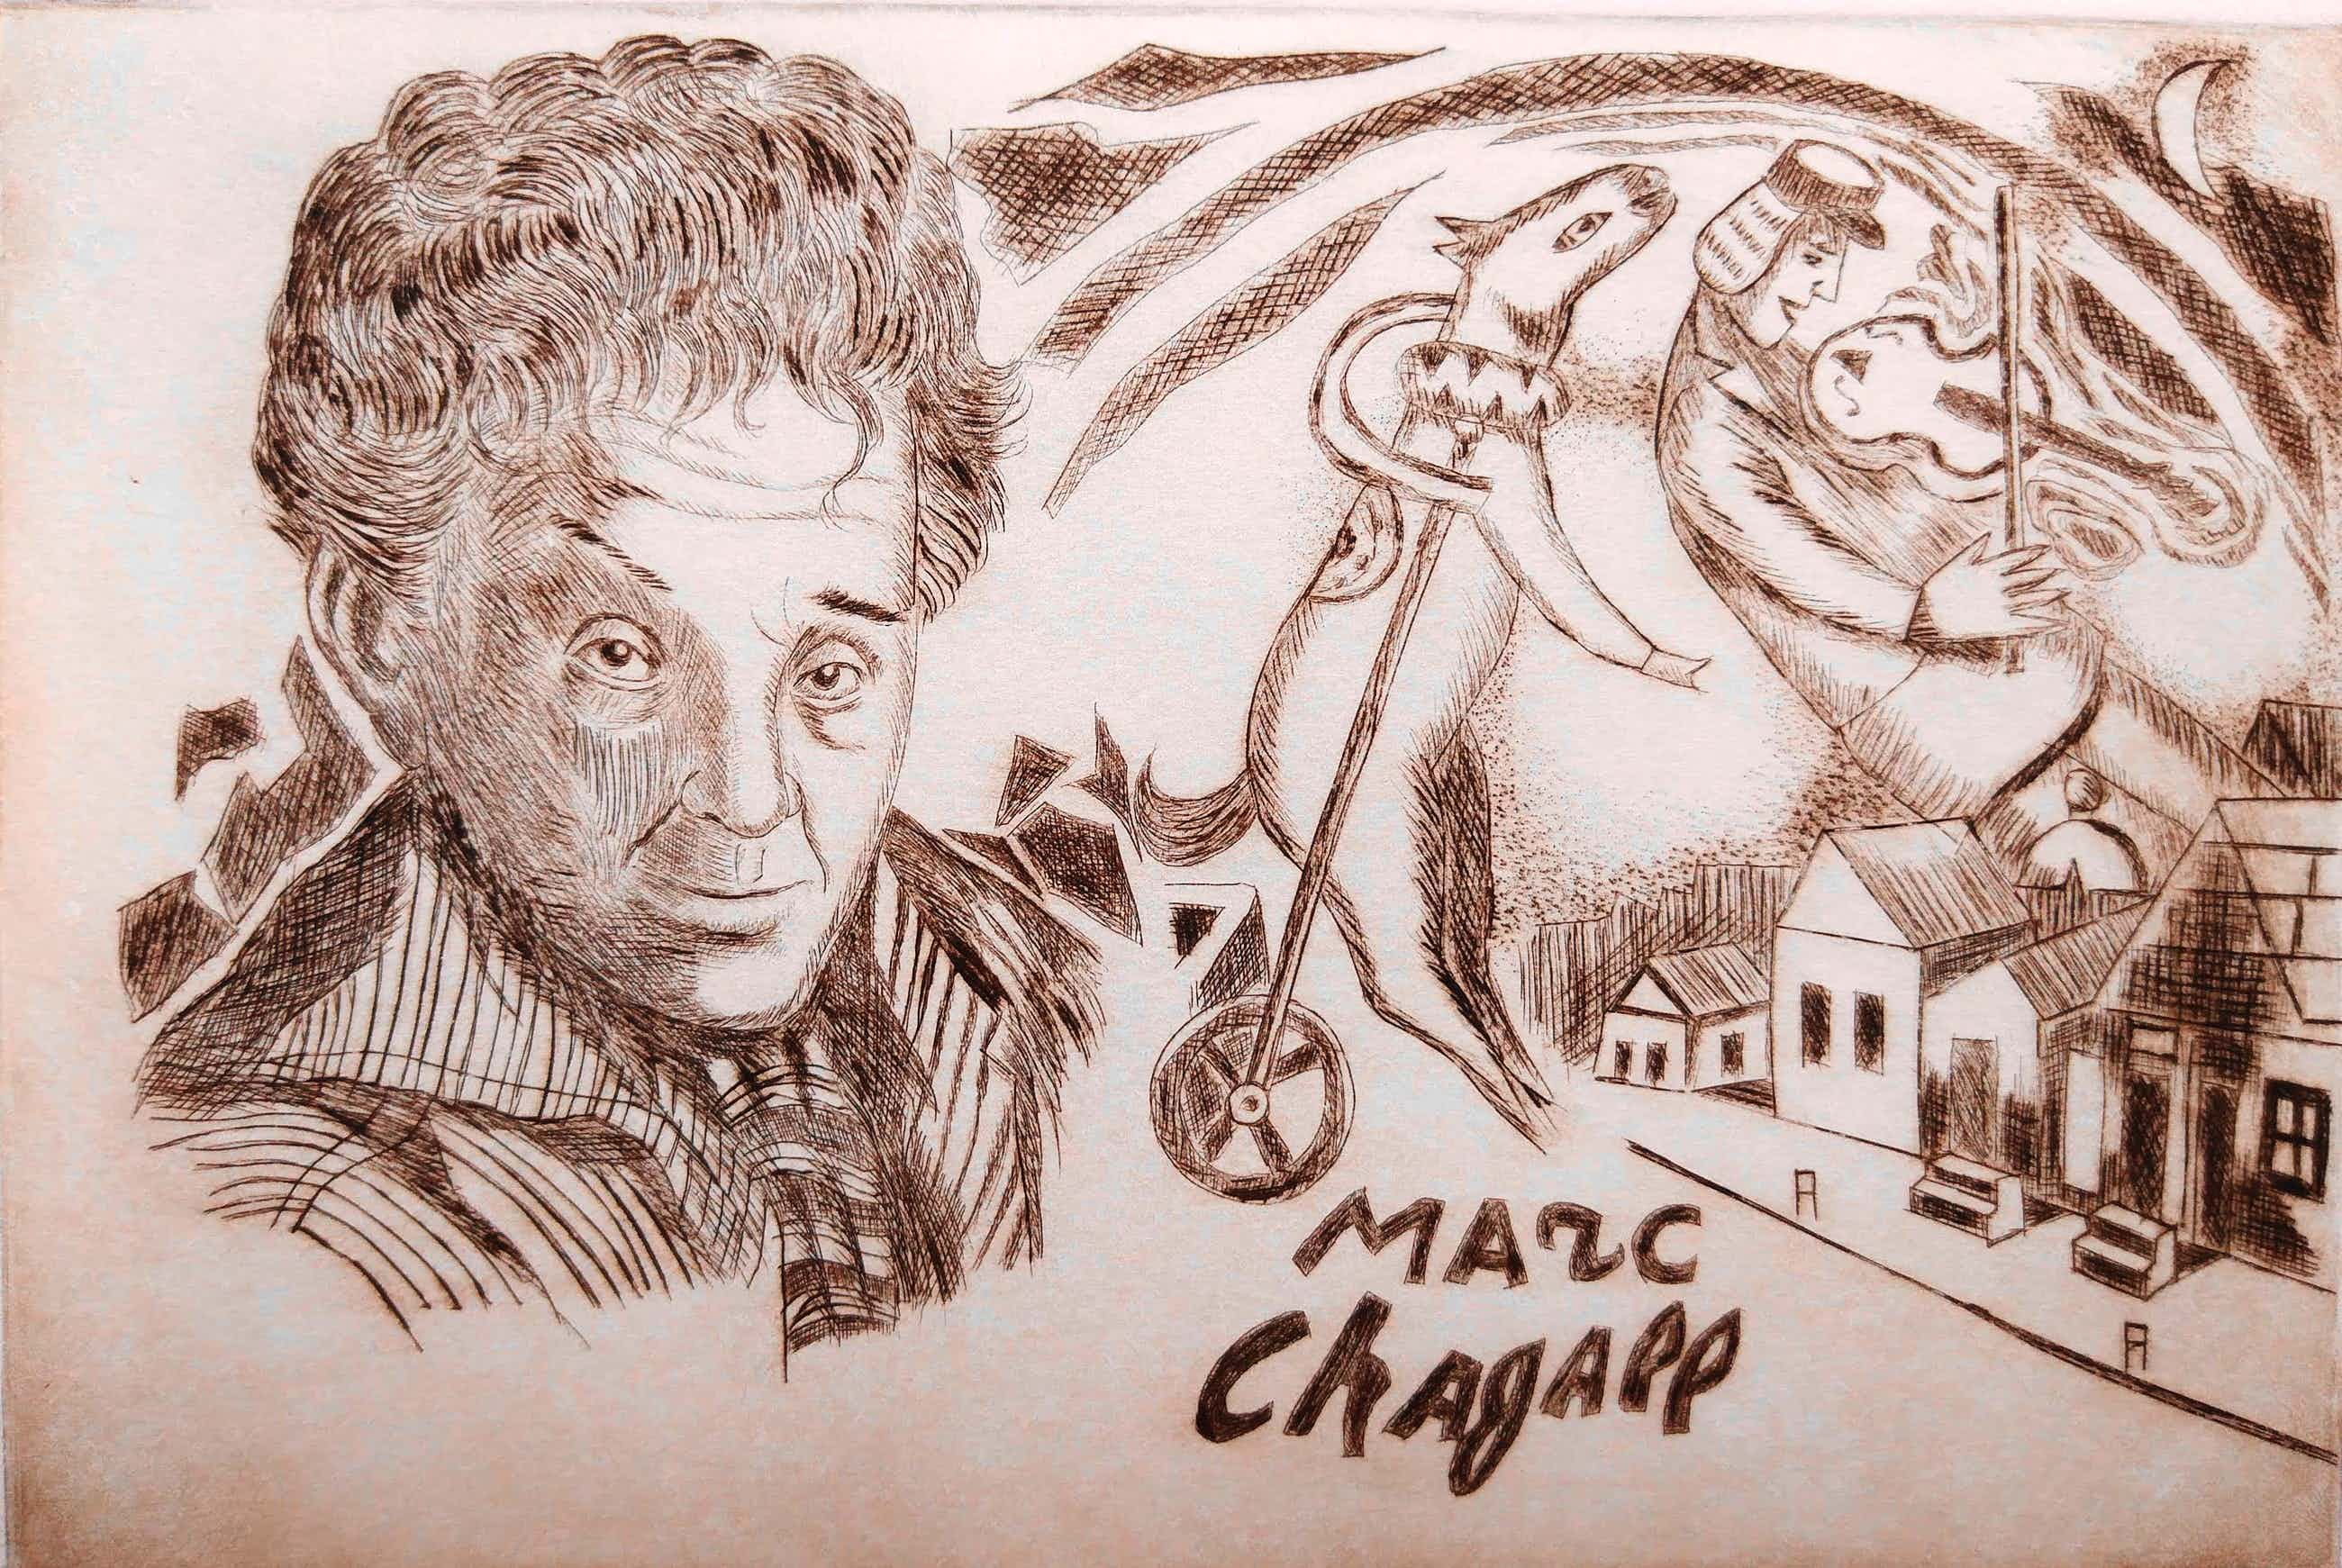 George C. Crionas - Homage to Chagall kopen? Bied vanaf 20!